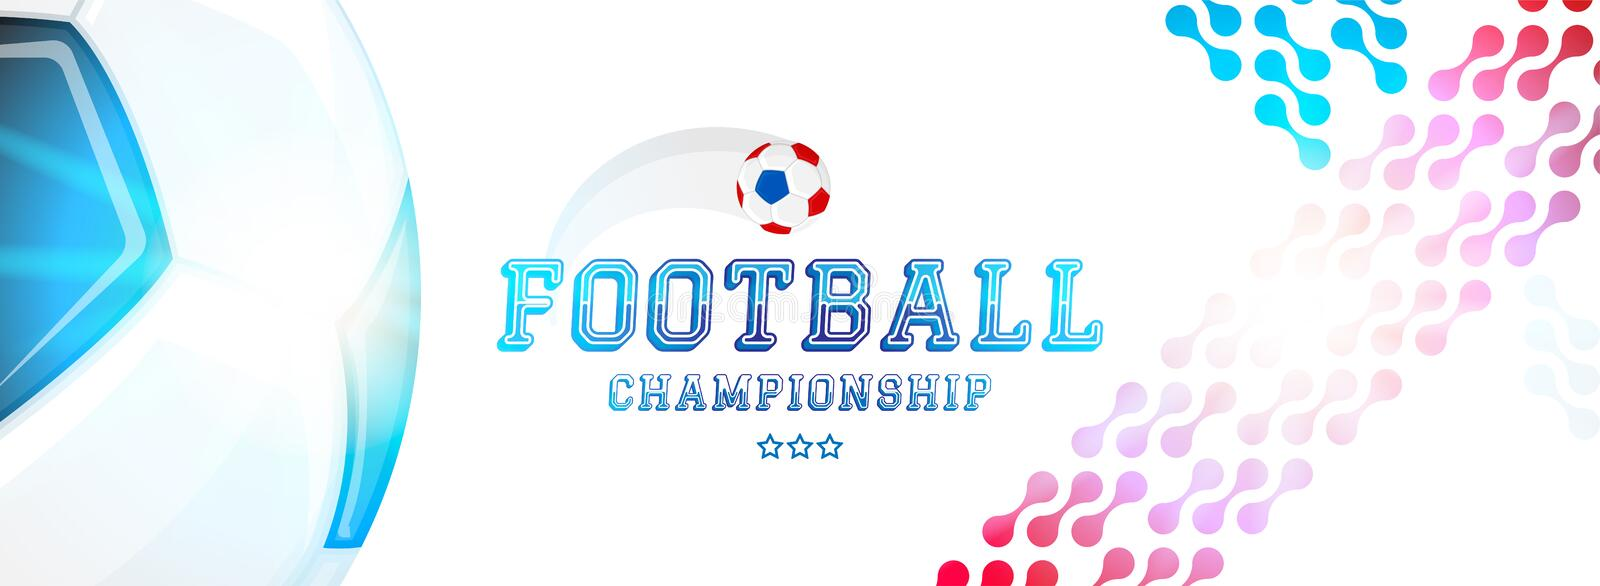 Soccer championship. Banner template horizontal format with a football ball and text on a background with a bright light effect vector illustration